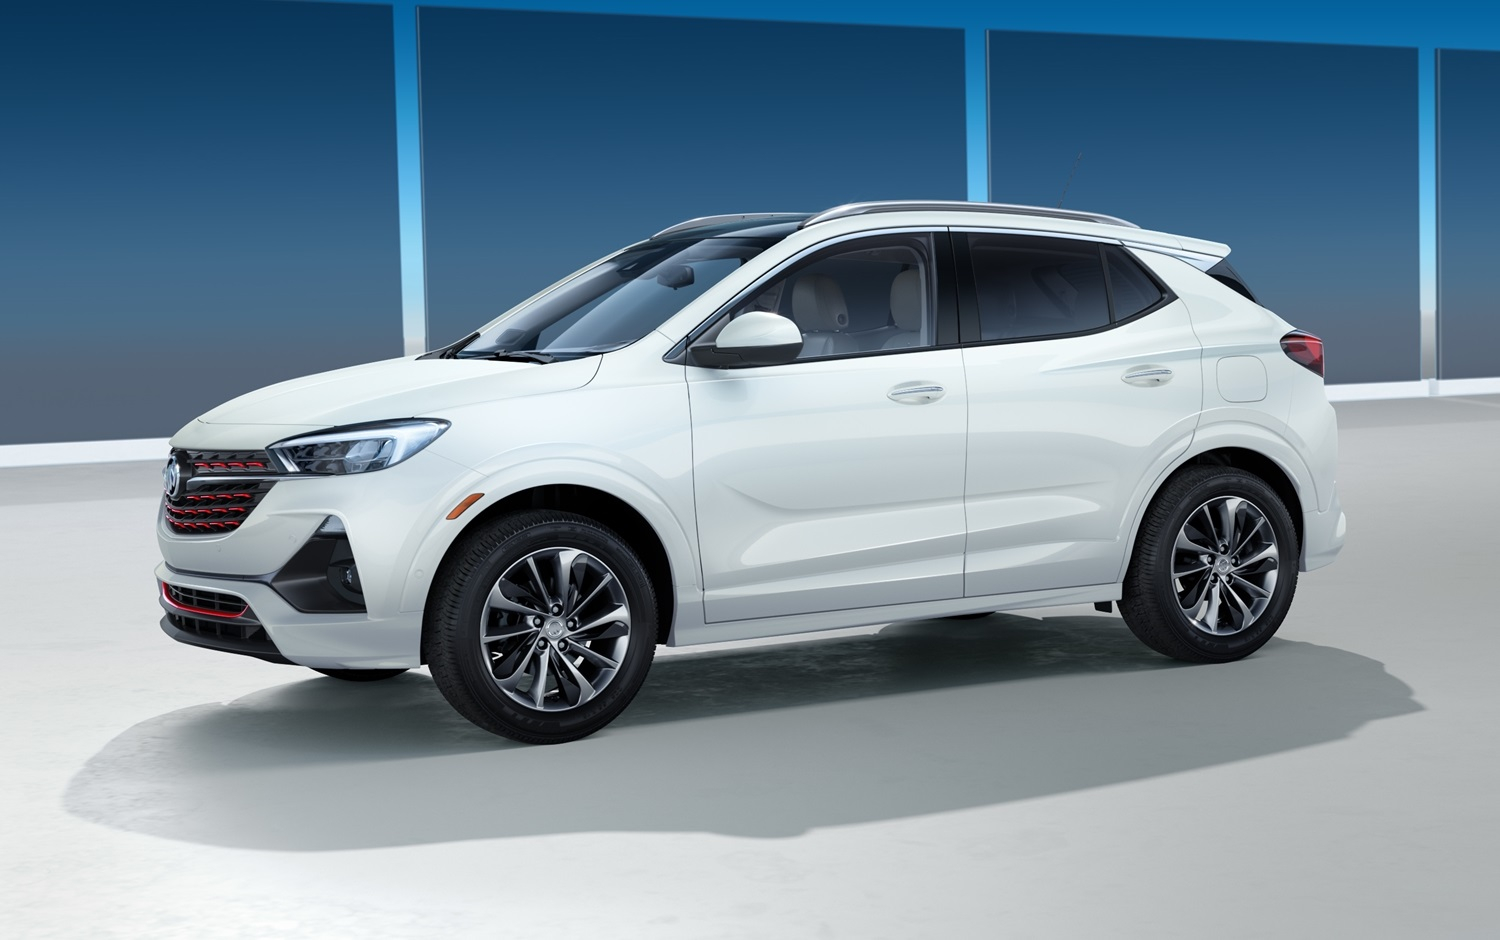 2021 Buick Encore Gx Info, Specs, Wiki | Gm Authority New 2021 Buick Encore Gx Engine Specs, Features, Fwd